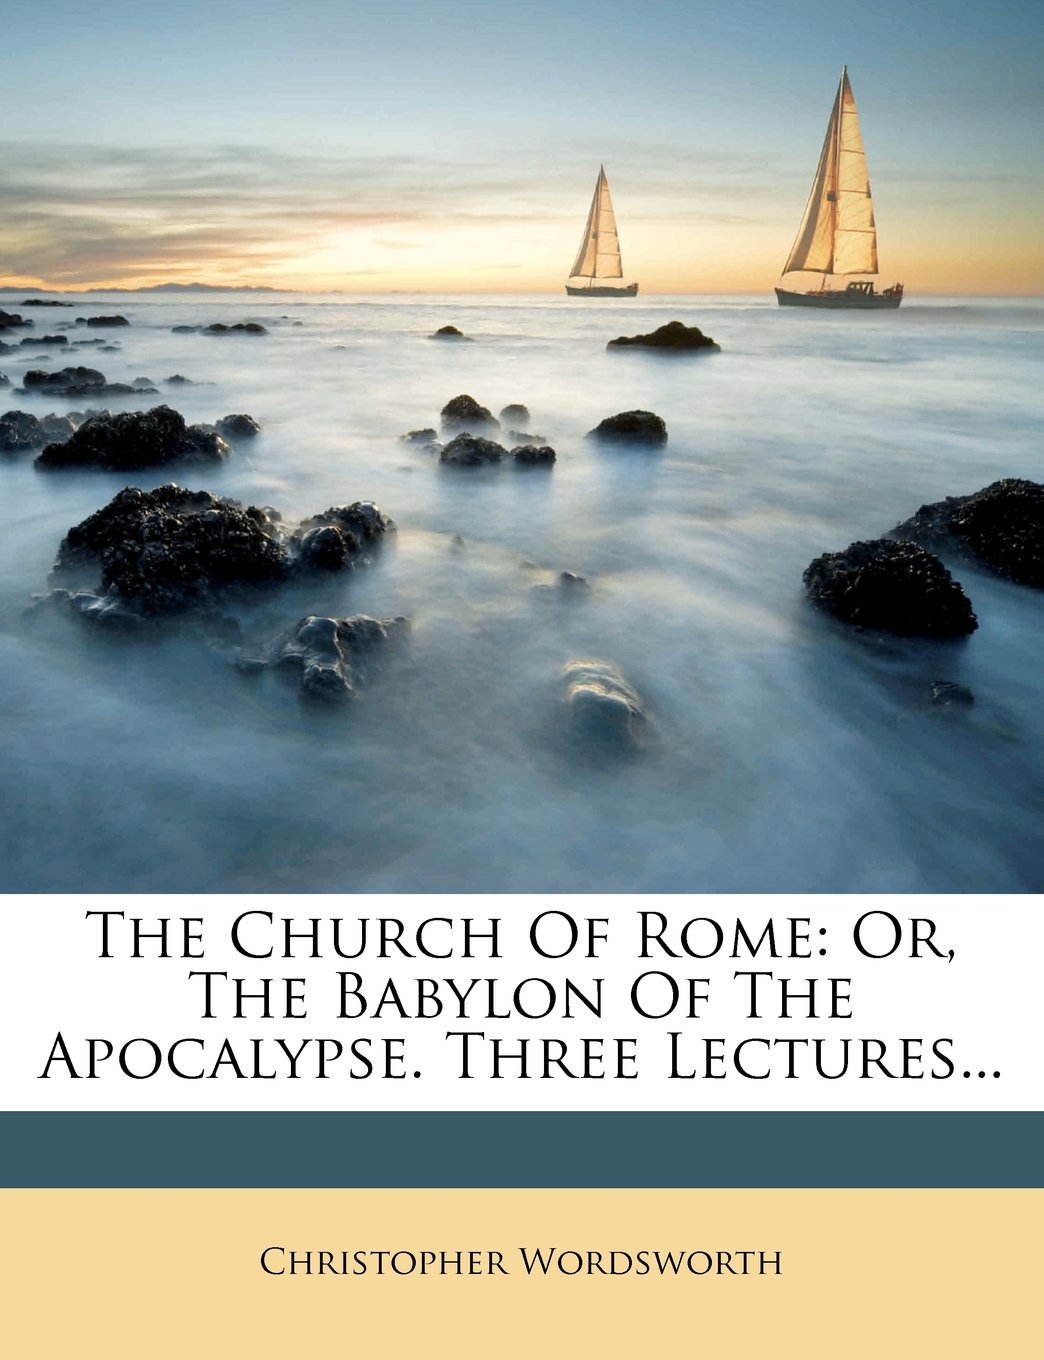 The Church Of Rome: Or, The Babylon Of The Apocalypse. Three Lectures... PDF